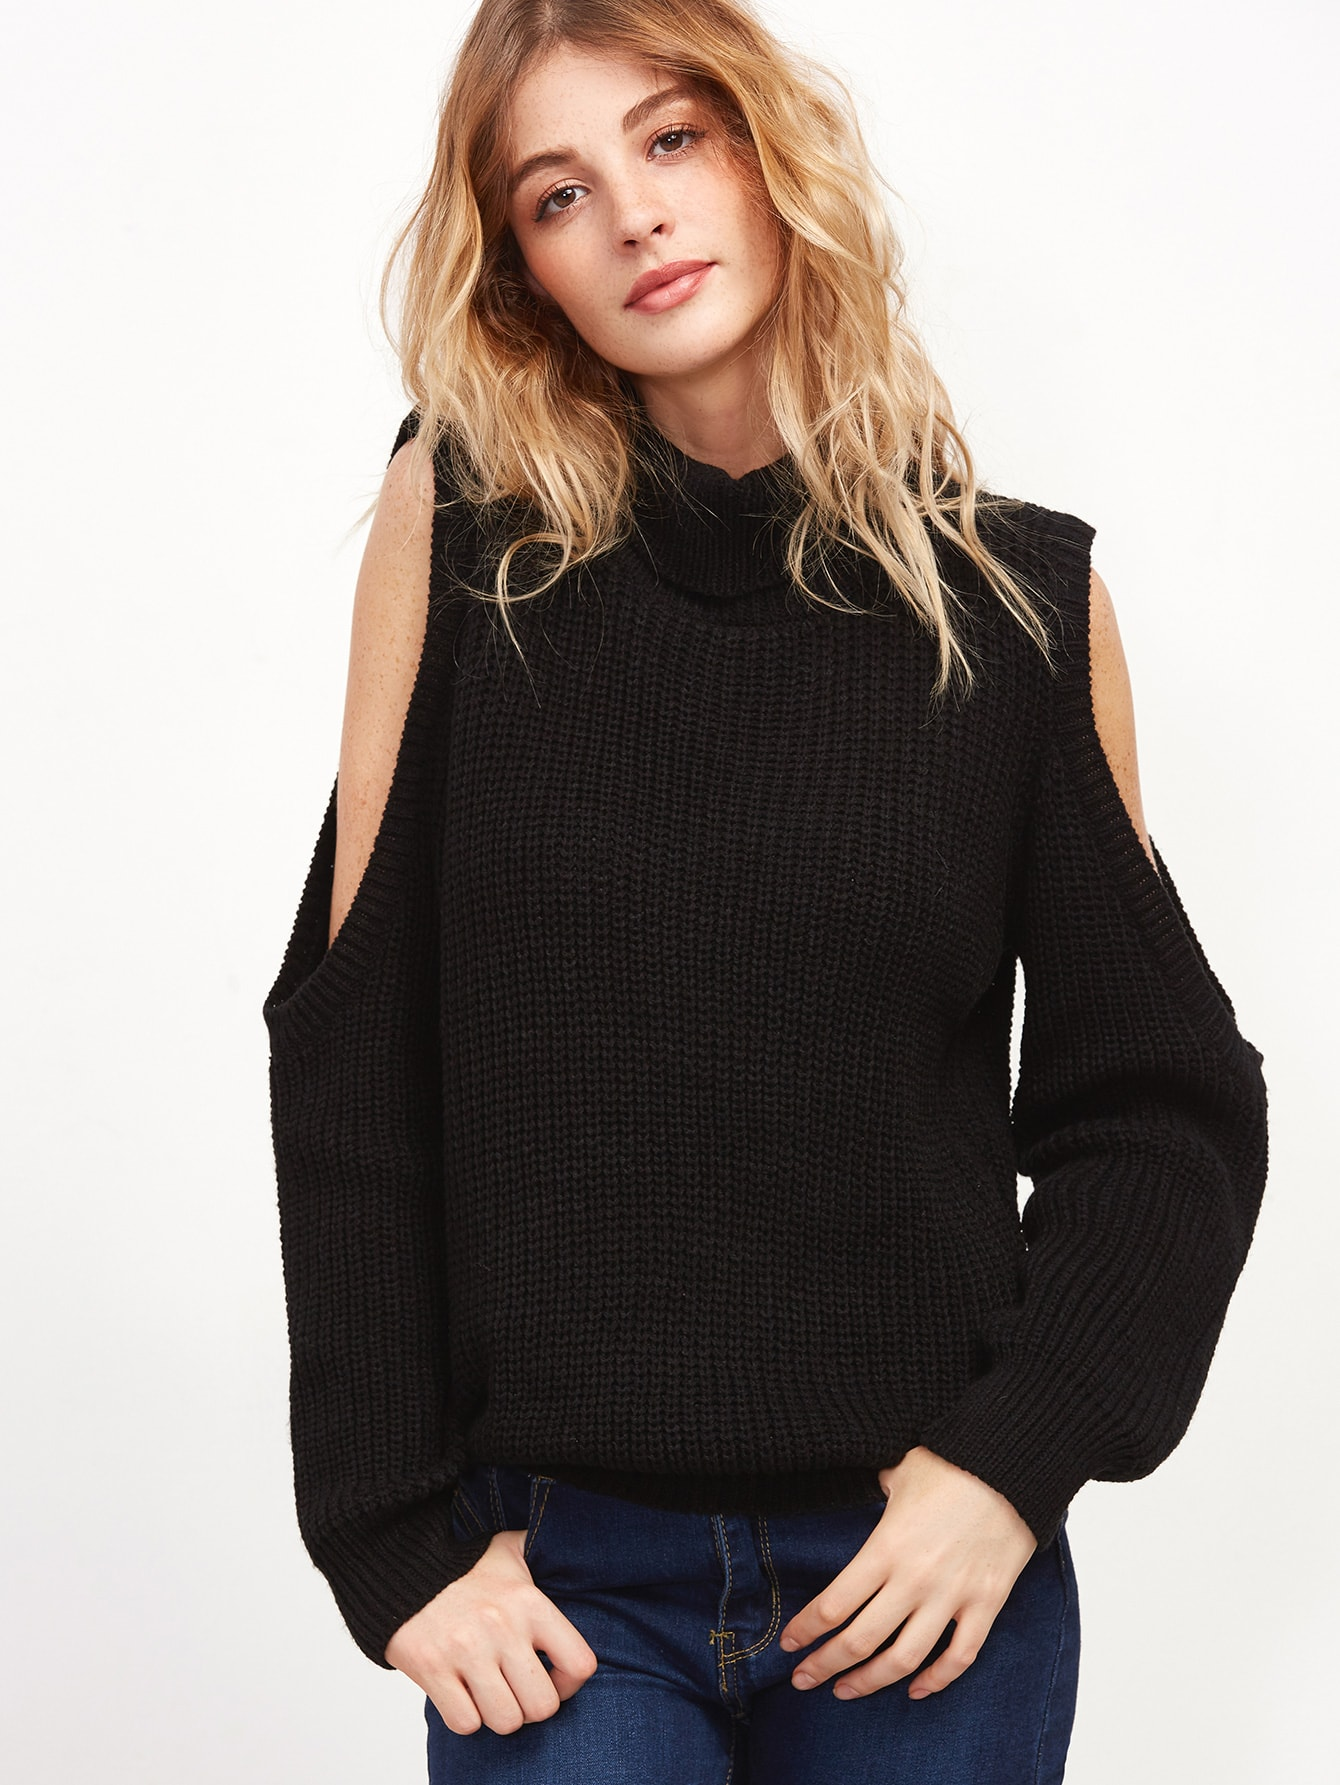 Black Turtleneck Open Shoulder Ribbed Knit Sweater open knit long sweater